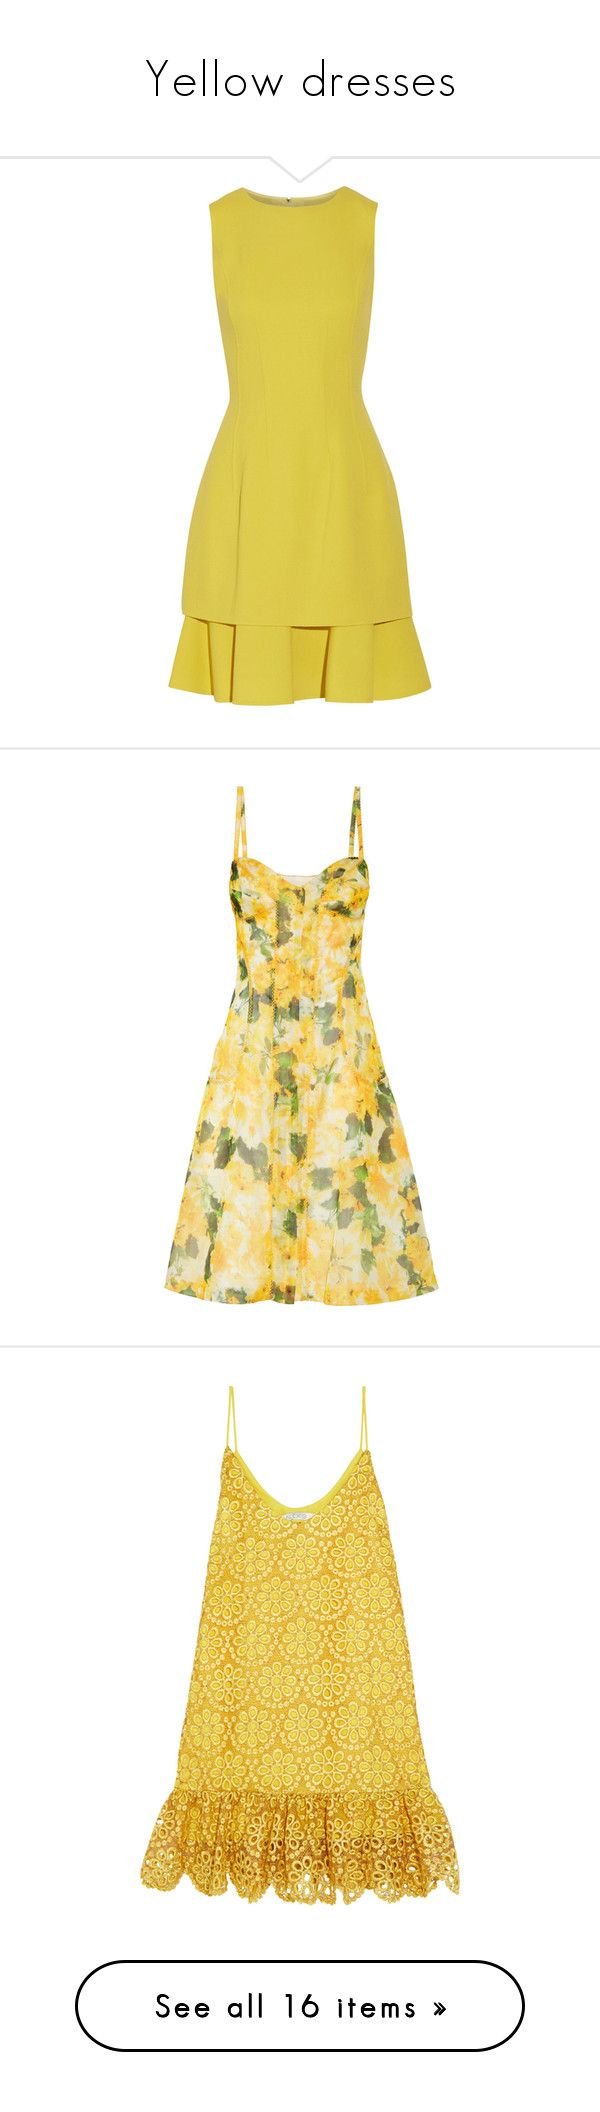 """""""Yellow dresses"""" by rosalinetomlinson ❤ liked on Polyvore featuring dresses, yellow, flounce dress, yellow ruffle dress, layered dress, fitted dress, loose fitting dresses, платья, oscar de la renta and embroidered dress"""